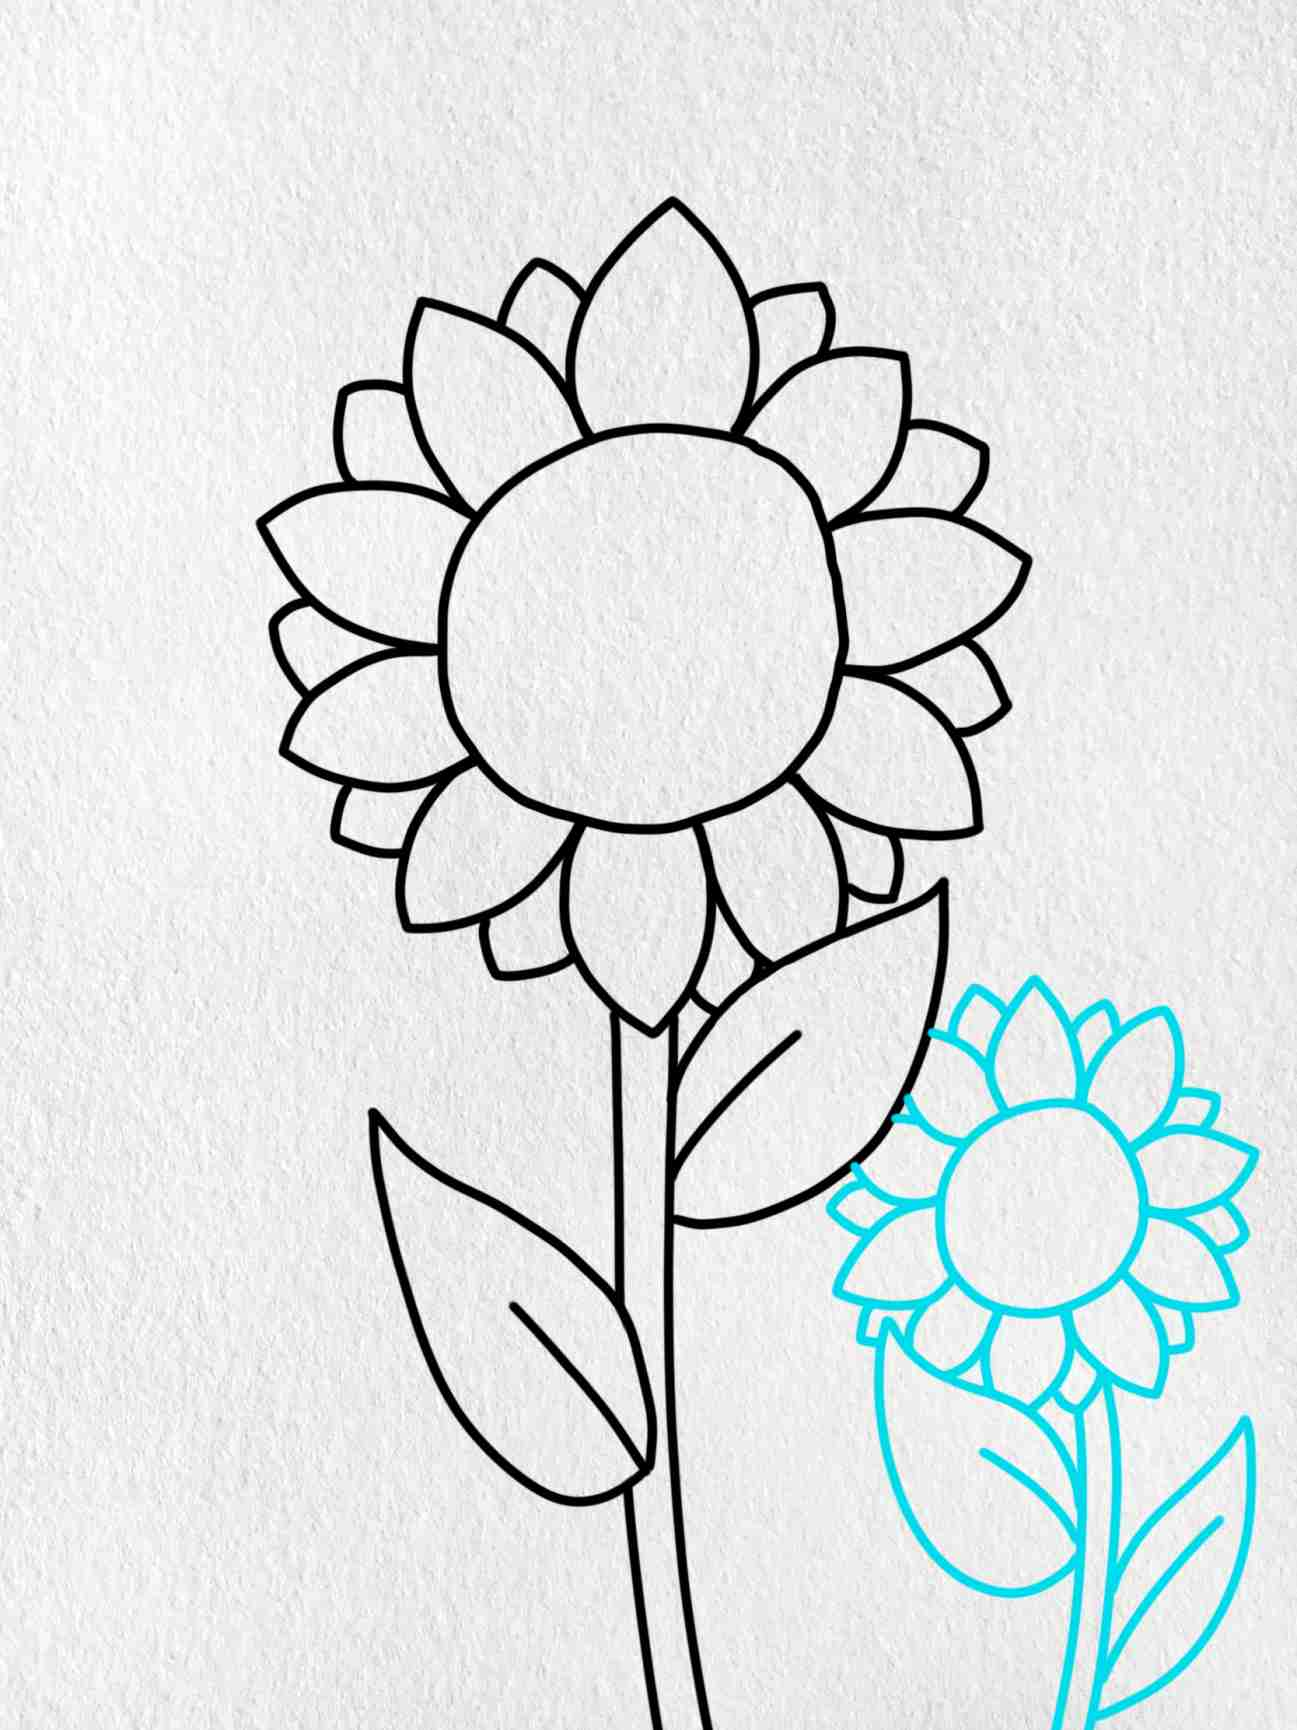 How To Draw Sunflowers: Step 4